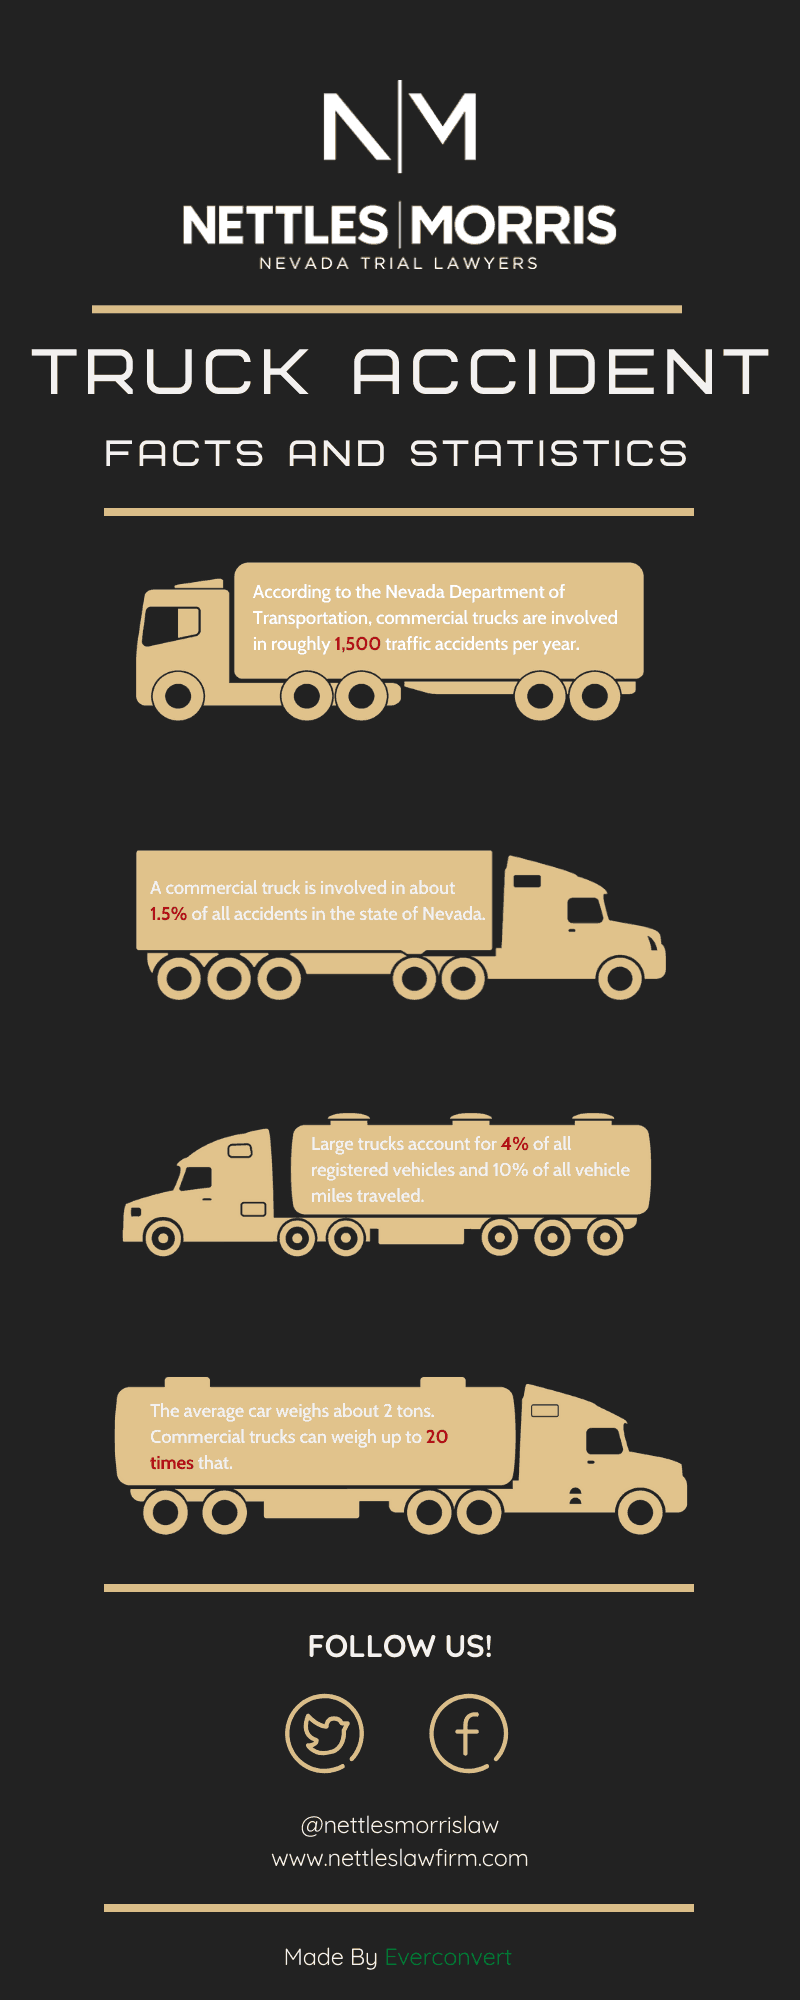 Nevada Truck Accident Facts And Statistics Infographic